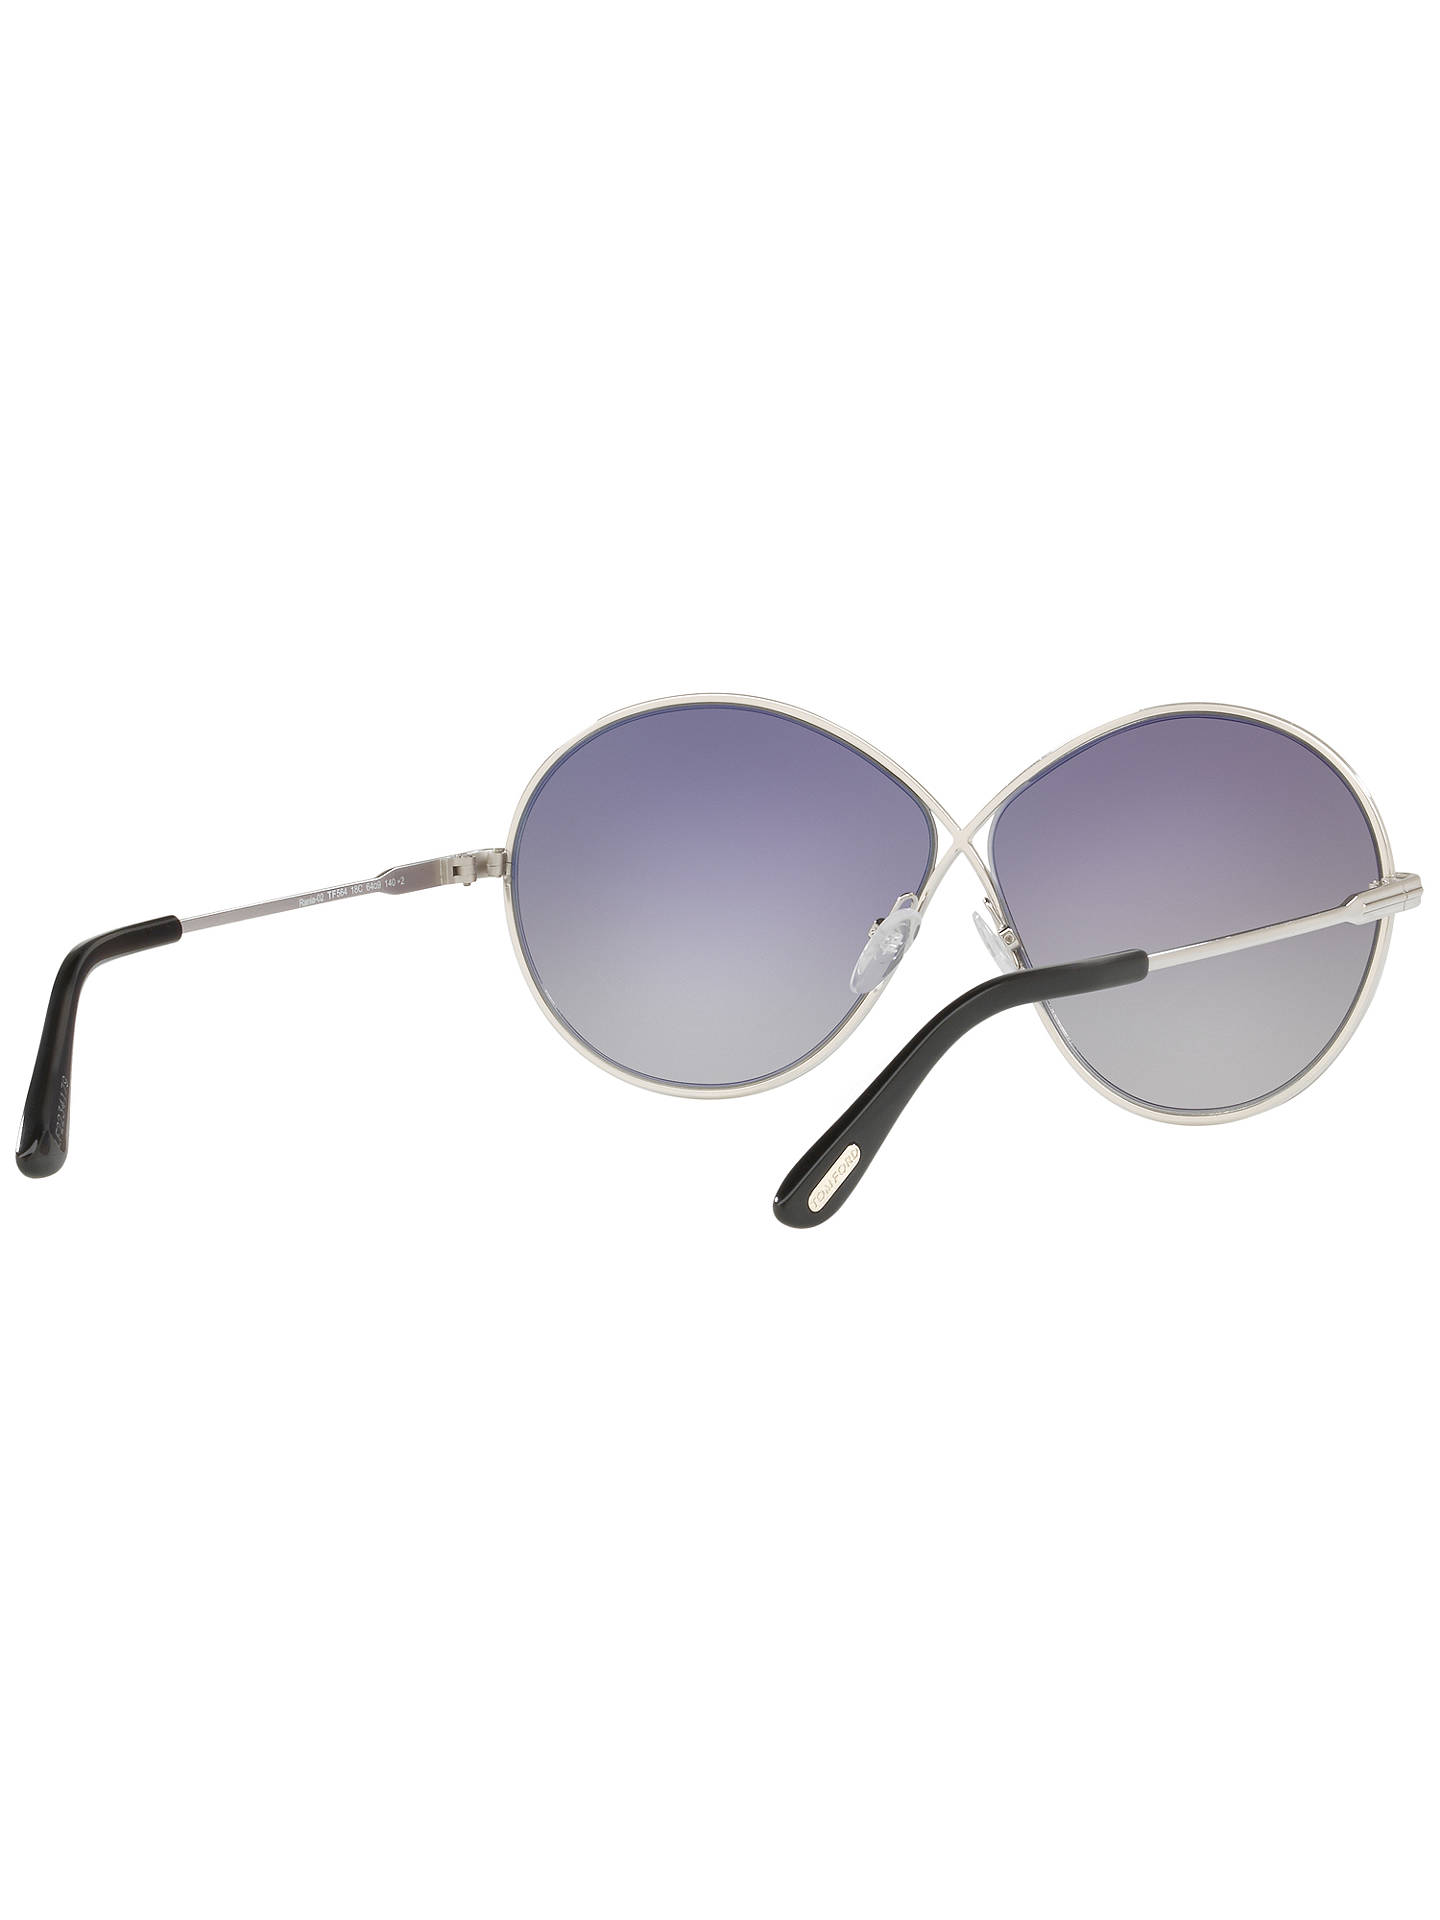 Buy TOM FORD FT0564 Rania-02 Oval Sunglasses, Silver/Mirror Grey Online at johnlewis.com